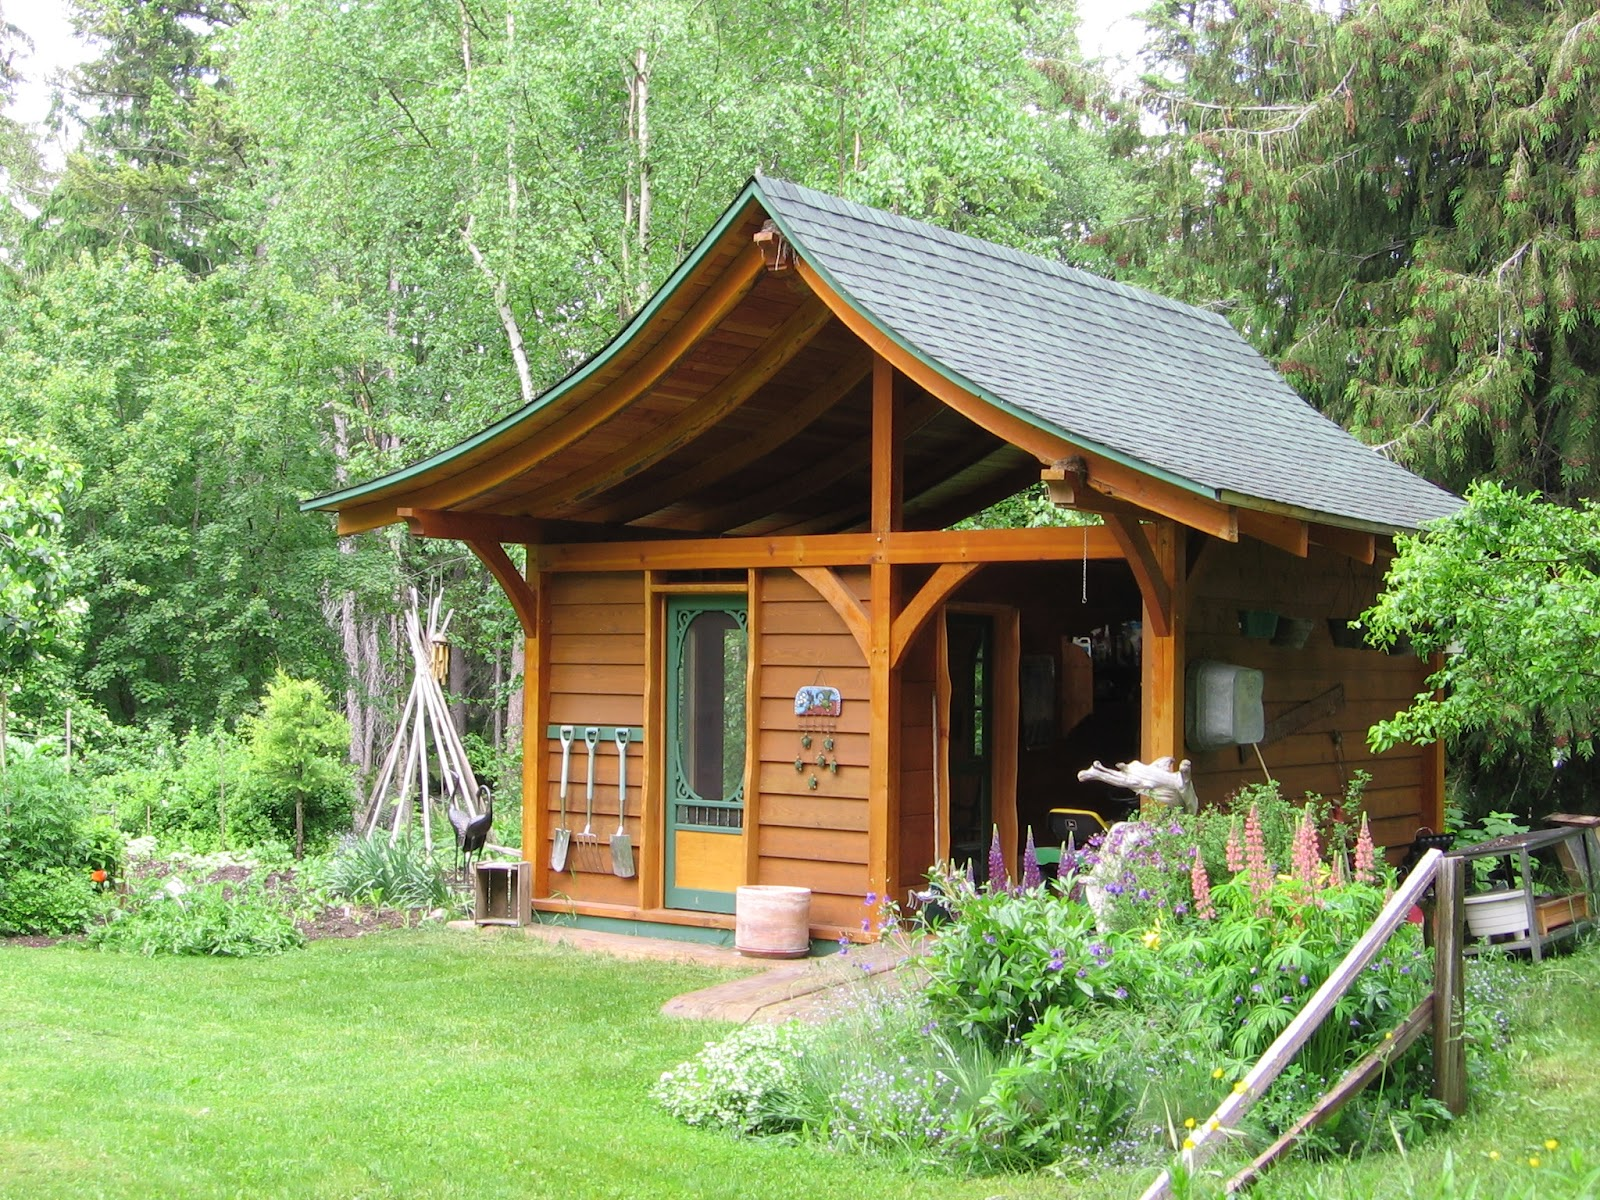 Fairytale backyards 30 magical garden sheds for Garden shed small